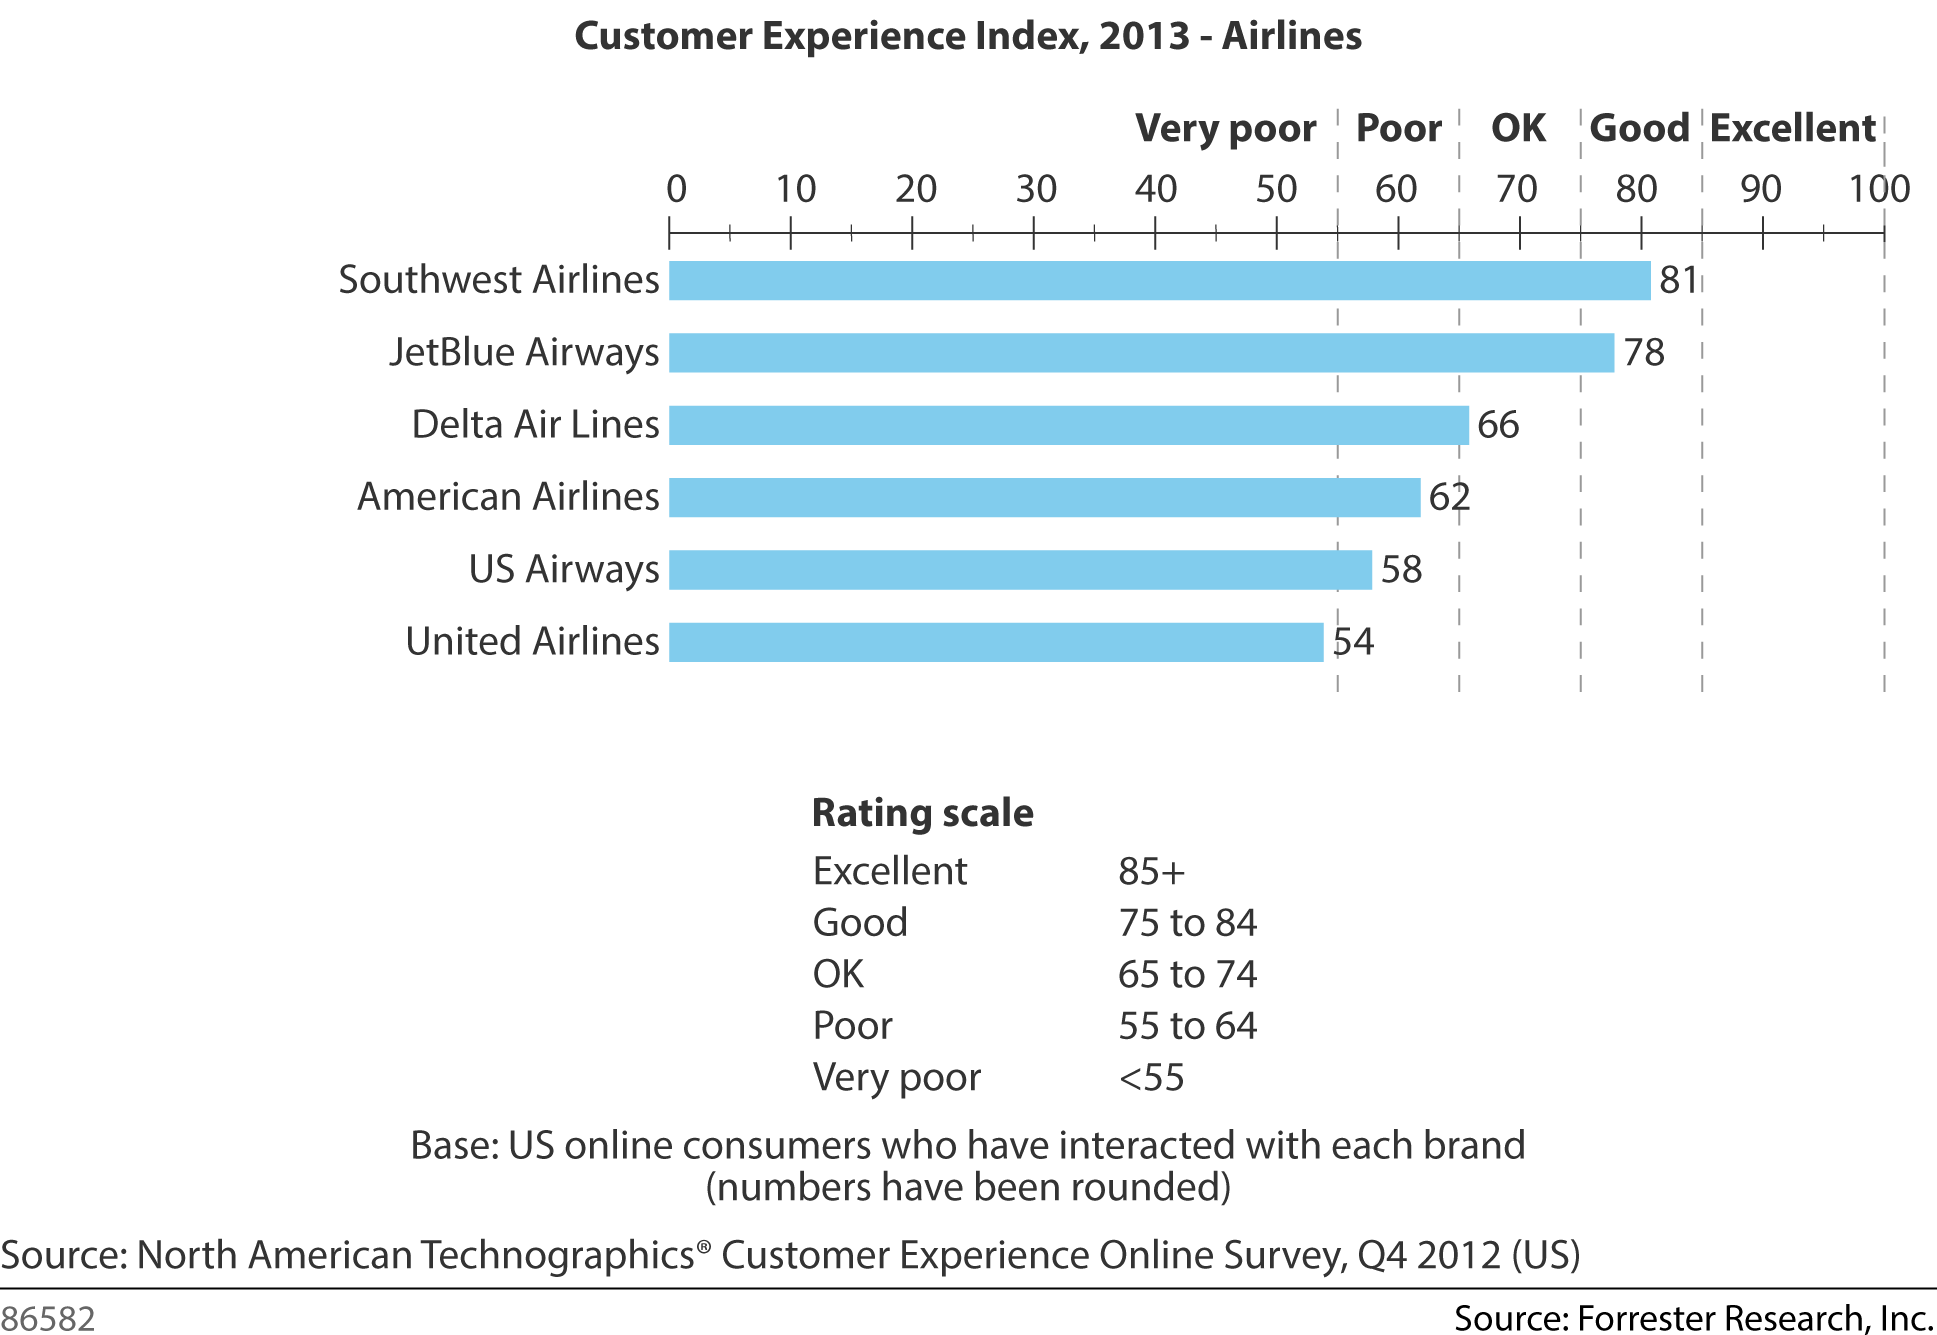 Forrester Customer Experience Index - 2013 - Airlines